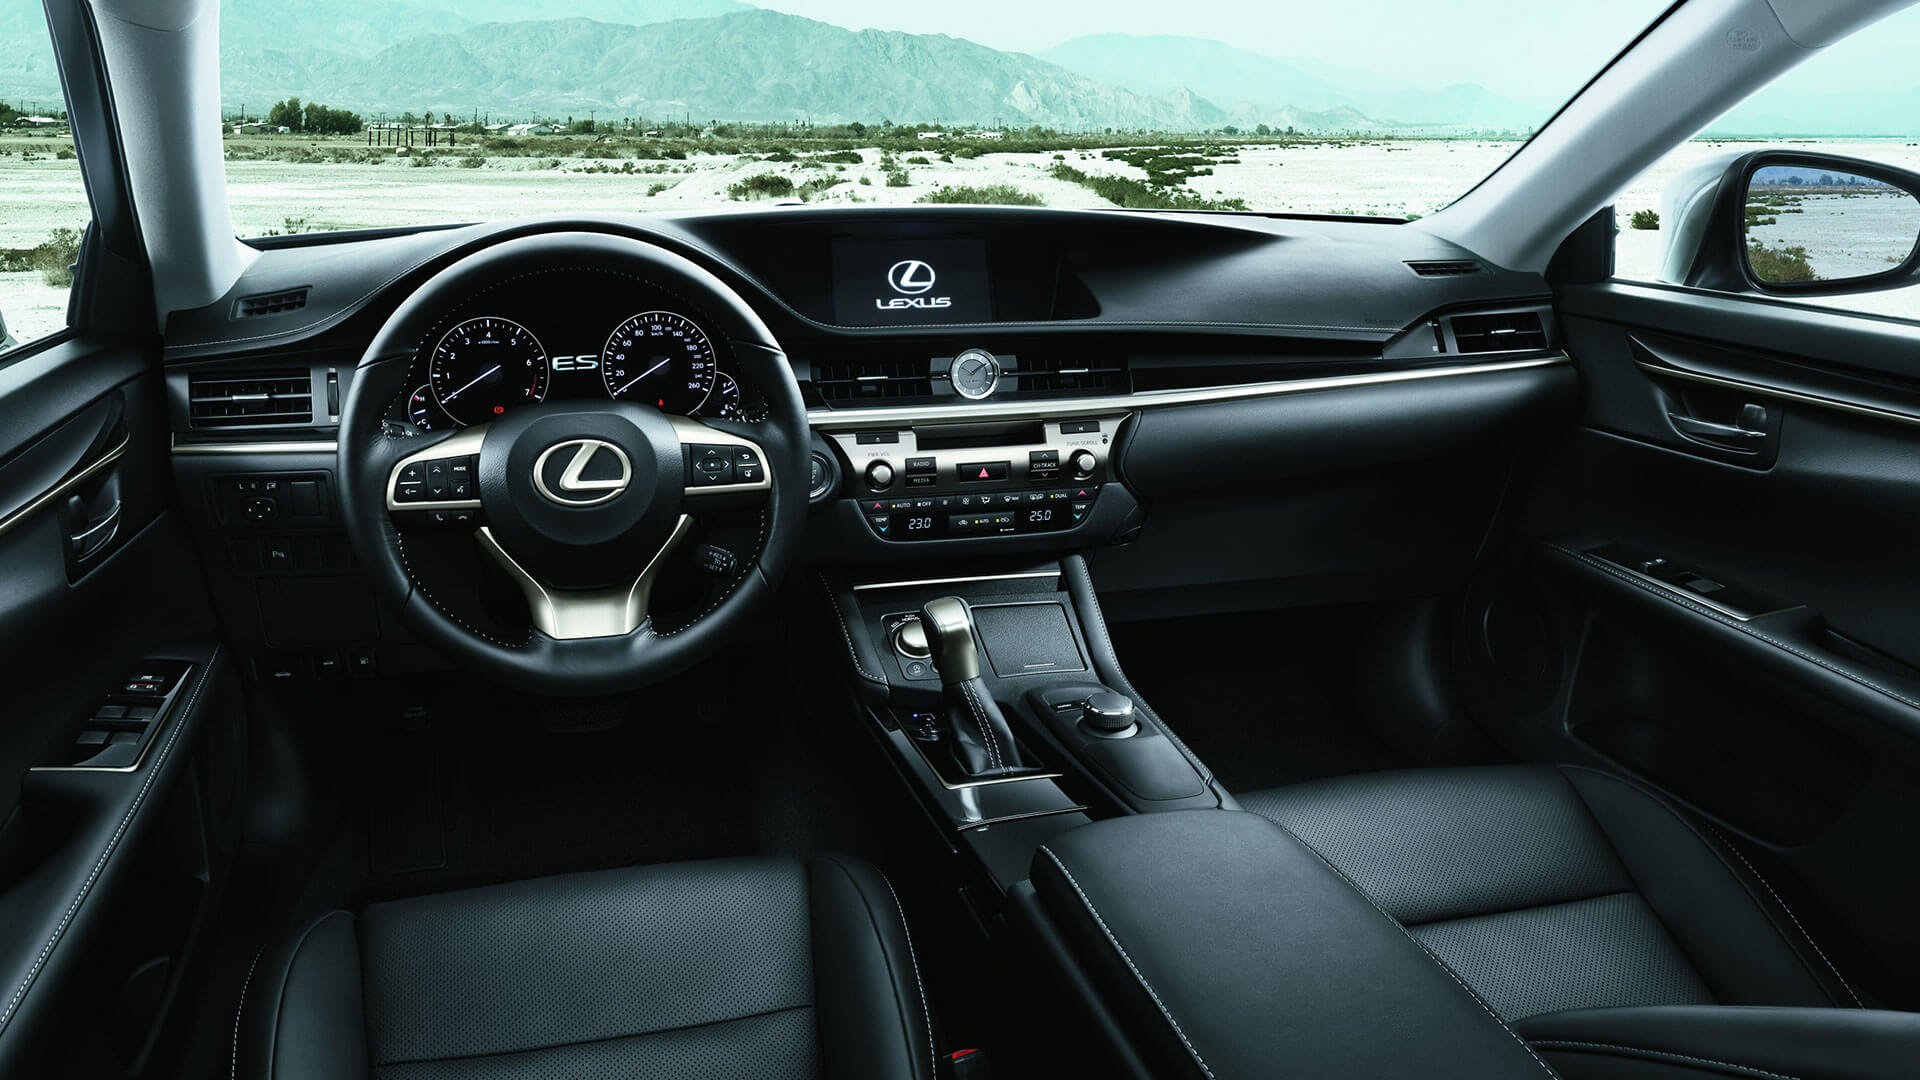 2017 lexus es 200 features takumi craftmanship